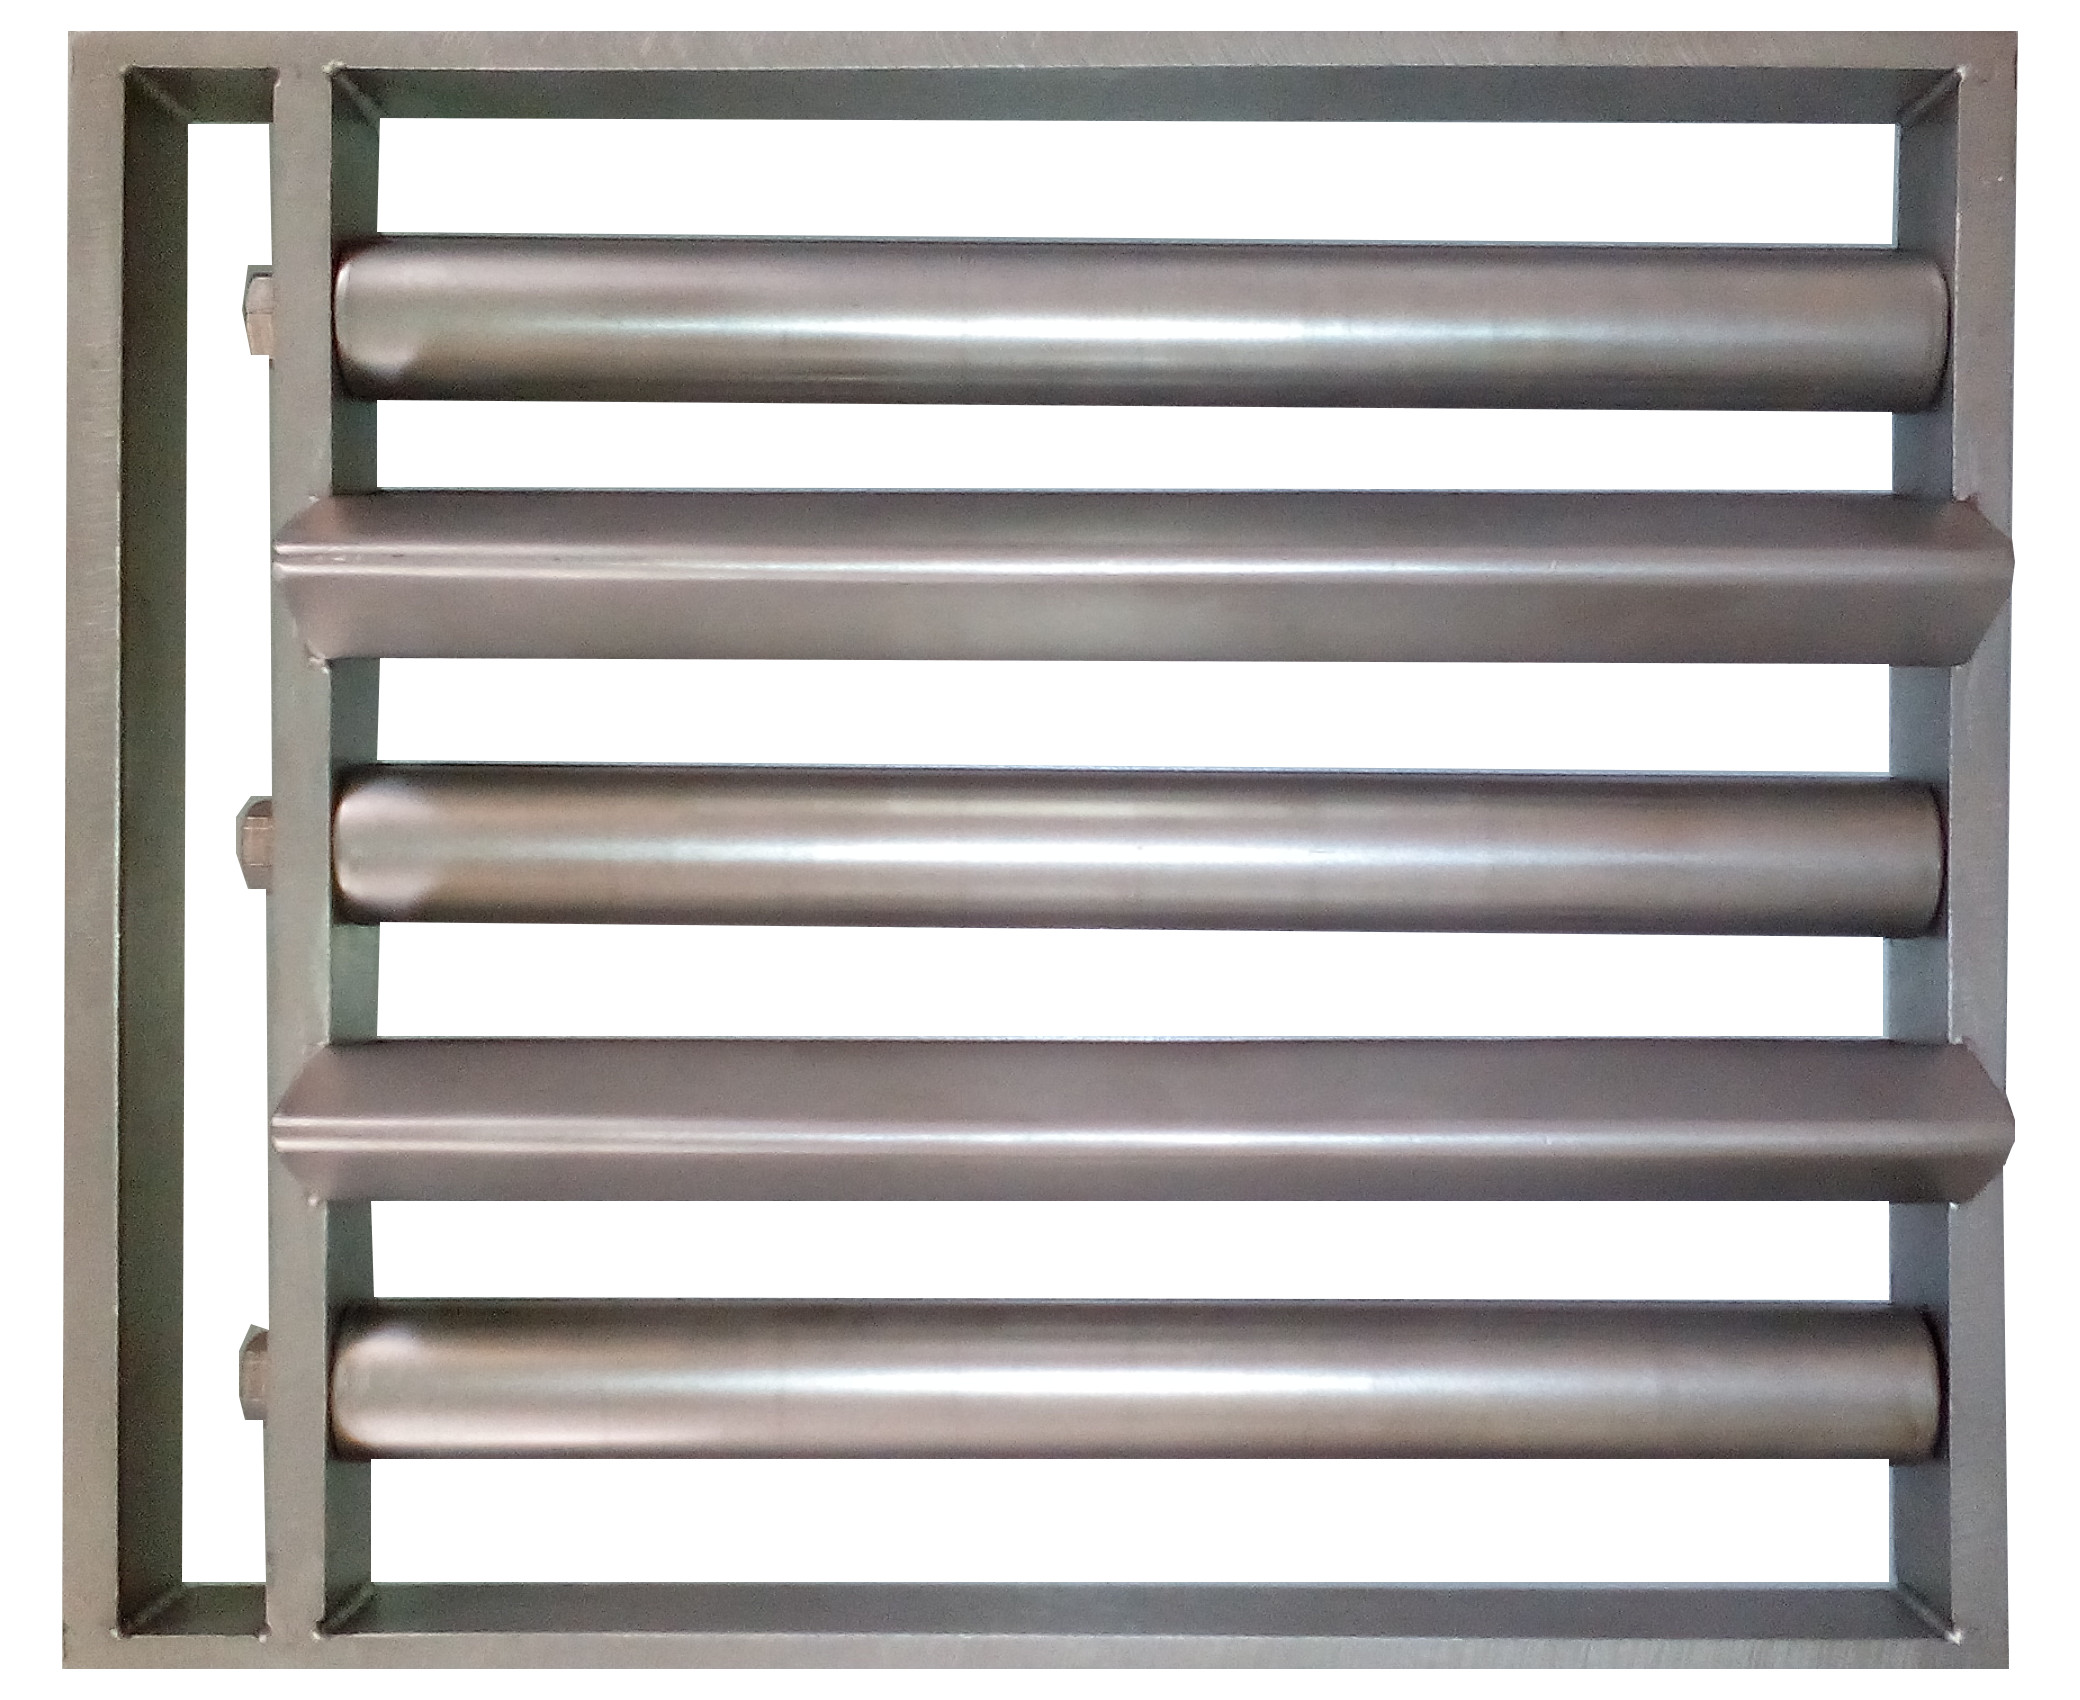 Drawer Grate Magnet Magnet Malaysia Contact Vince